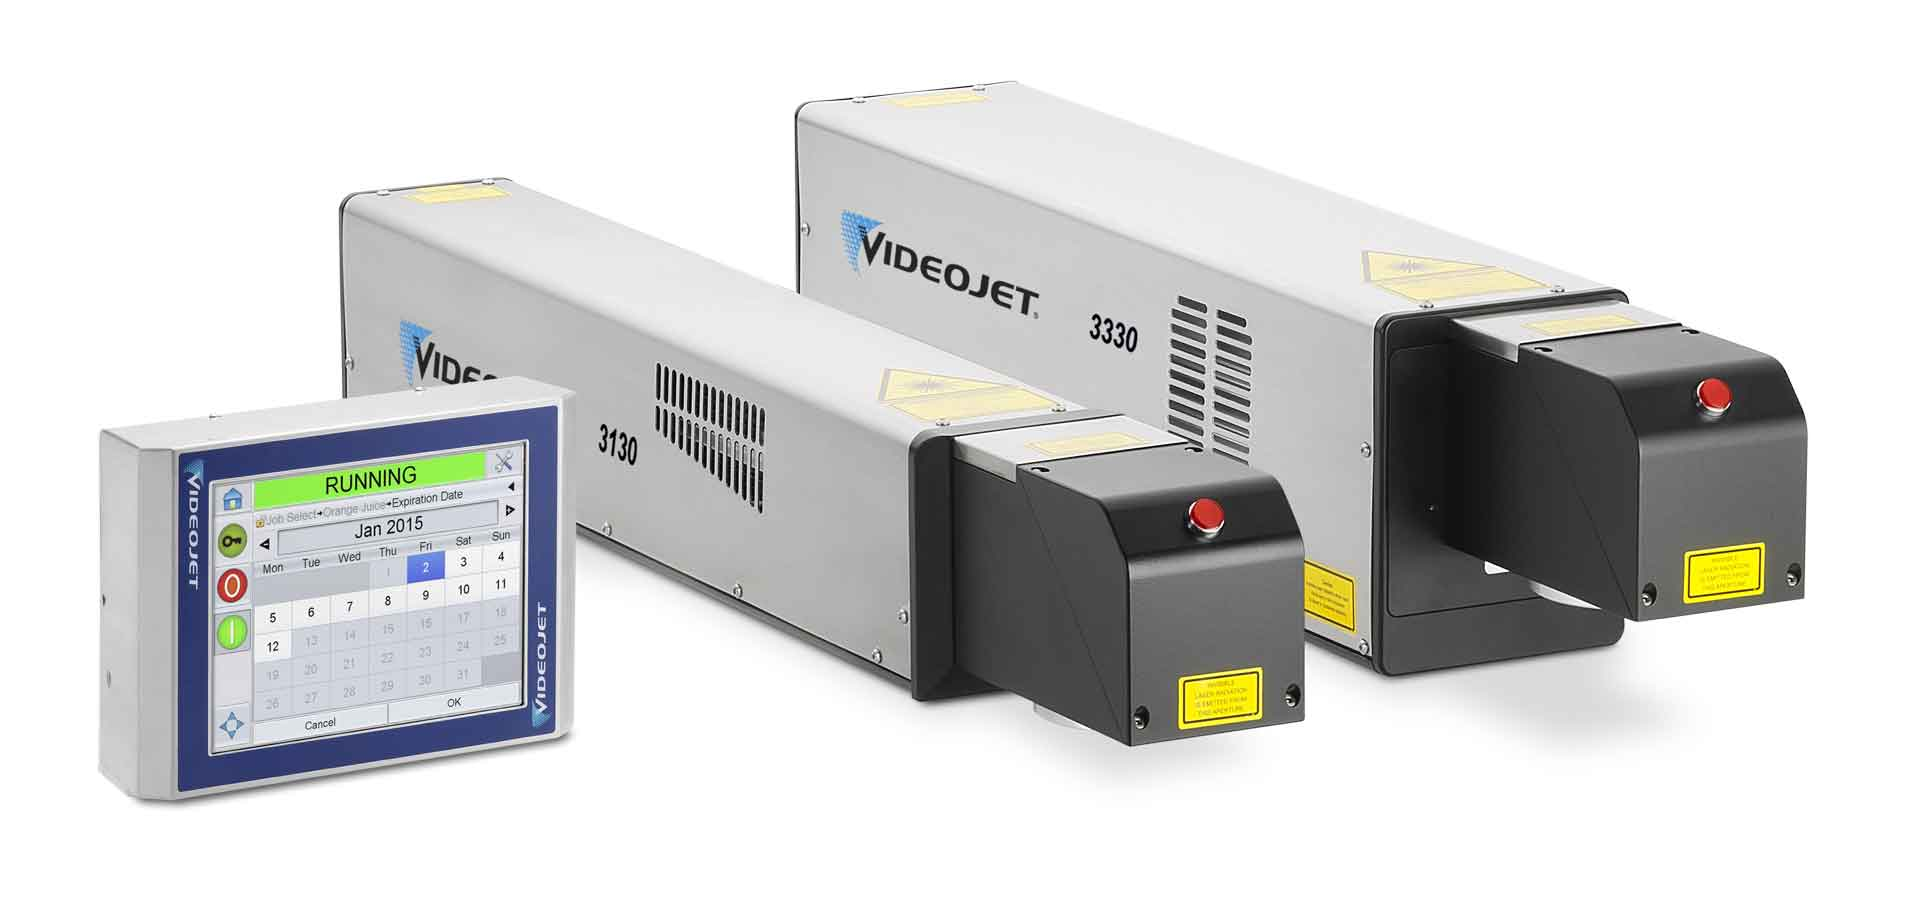 Videojet CO2 Laser Marking Systems Bolster Manufacturing Productivity